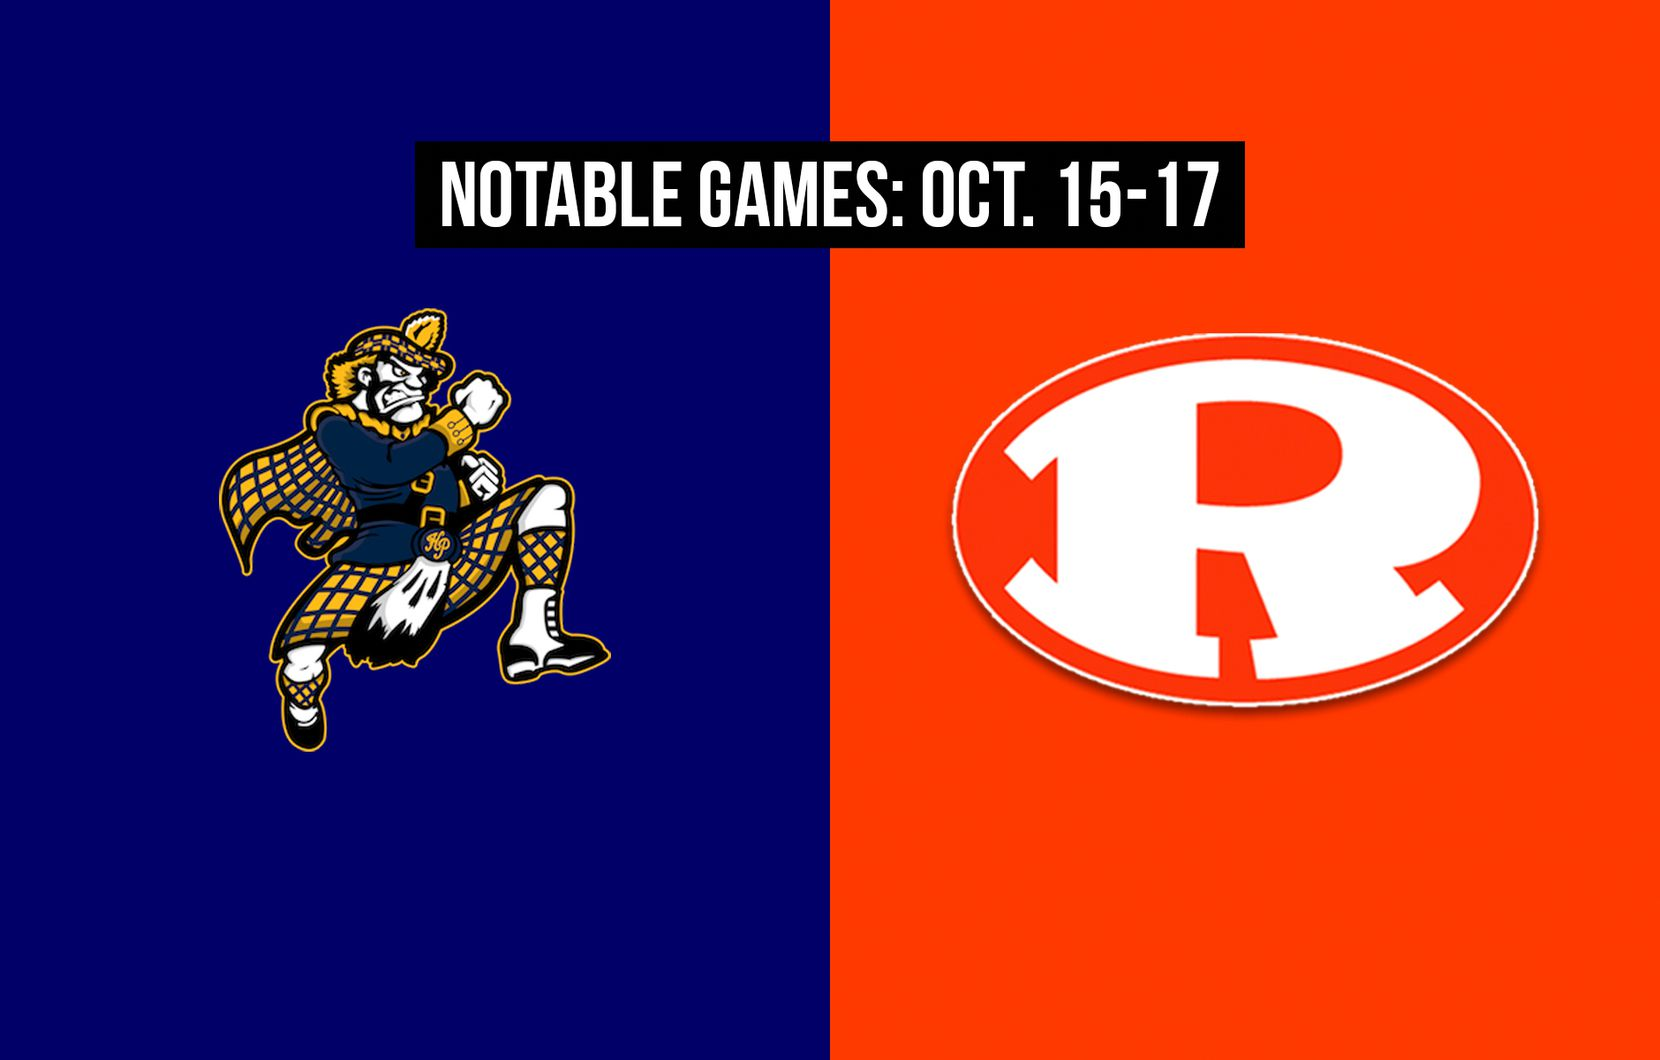 Notable games for the week of Oct. 15-17 of the 2020 season: Highland Park vs. Rockwall.